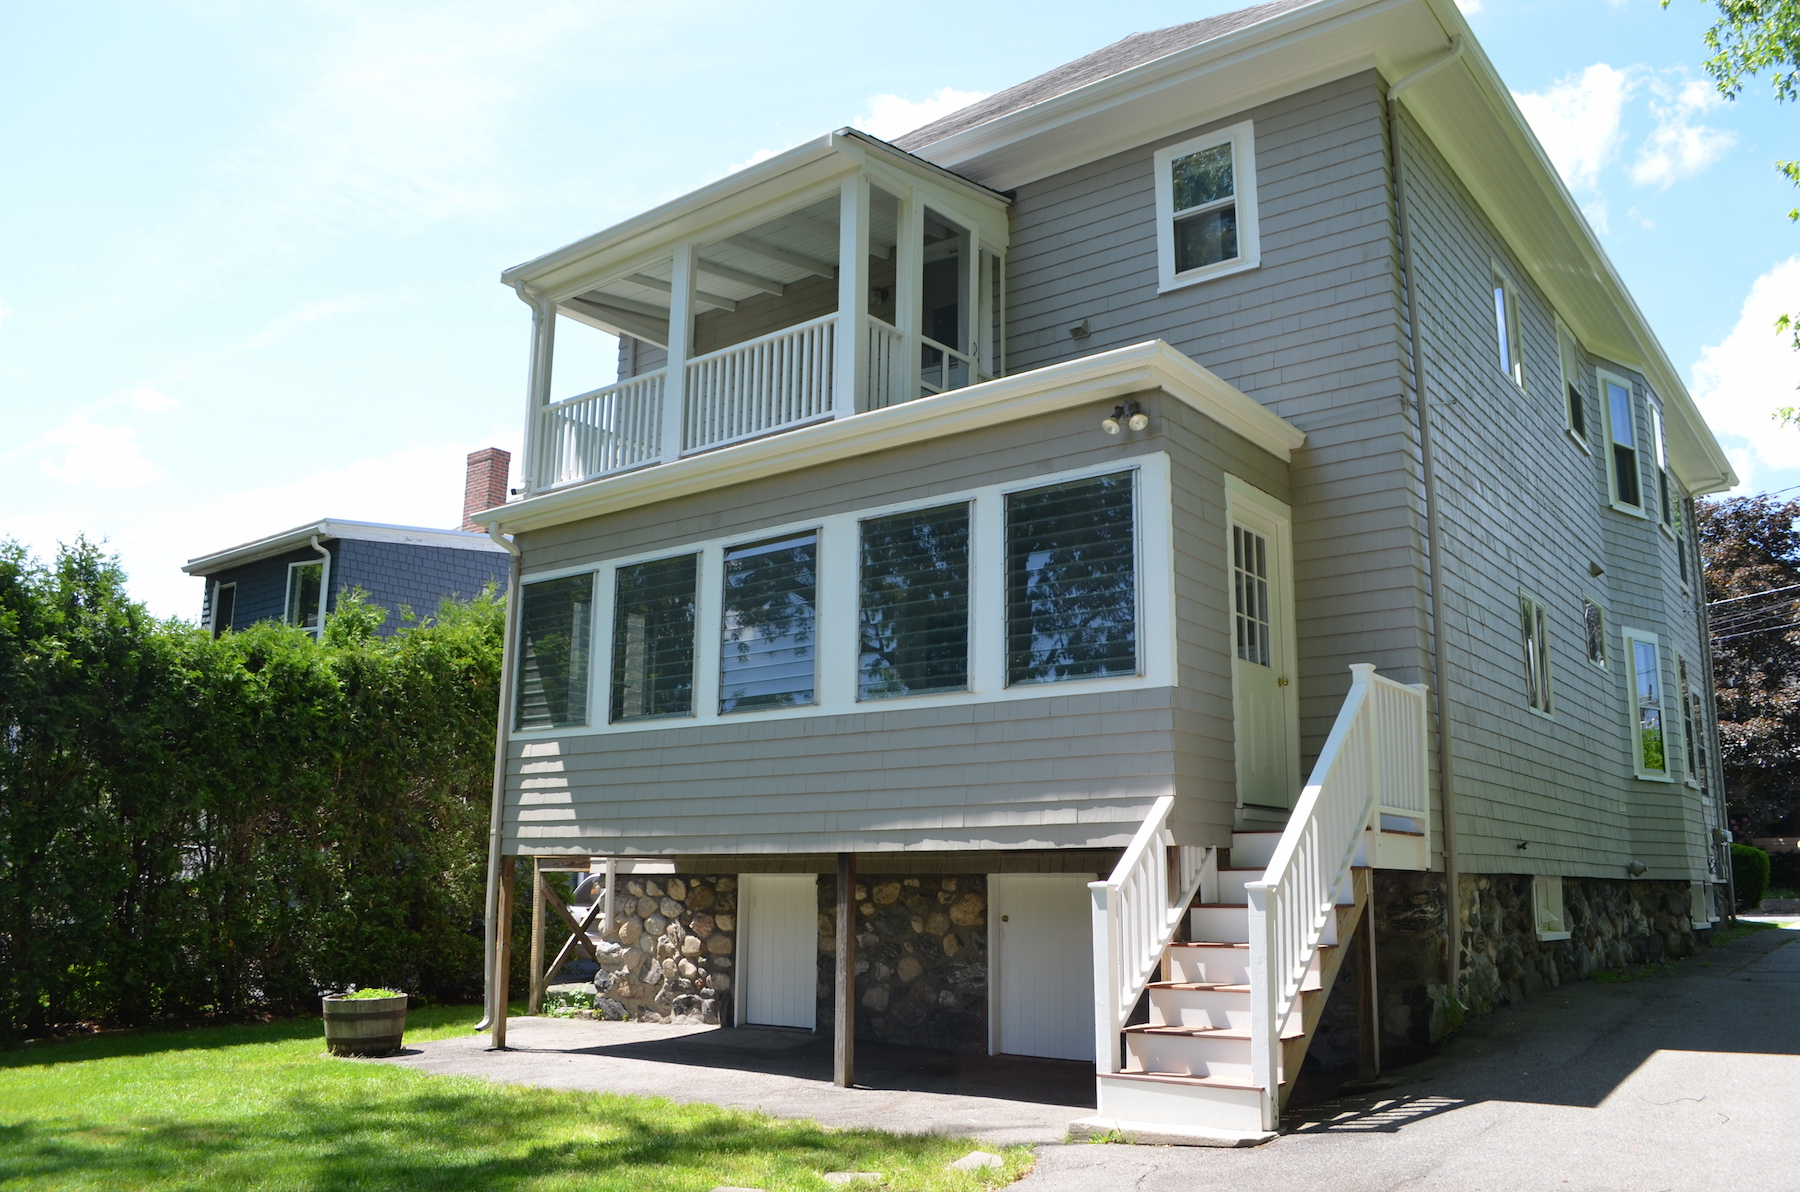 Multi-Family Home for Rent at 16 Water St Unit 1 Winchester, MA 16 Water Street Unit 1 Winchester, Massachusetts 01890 United States